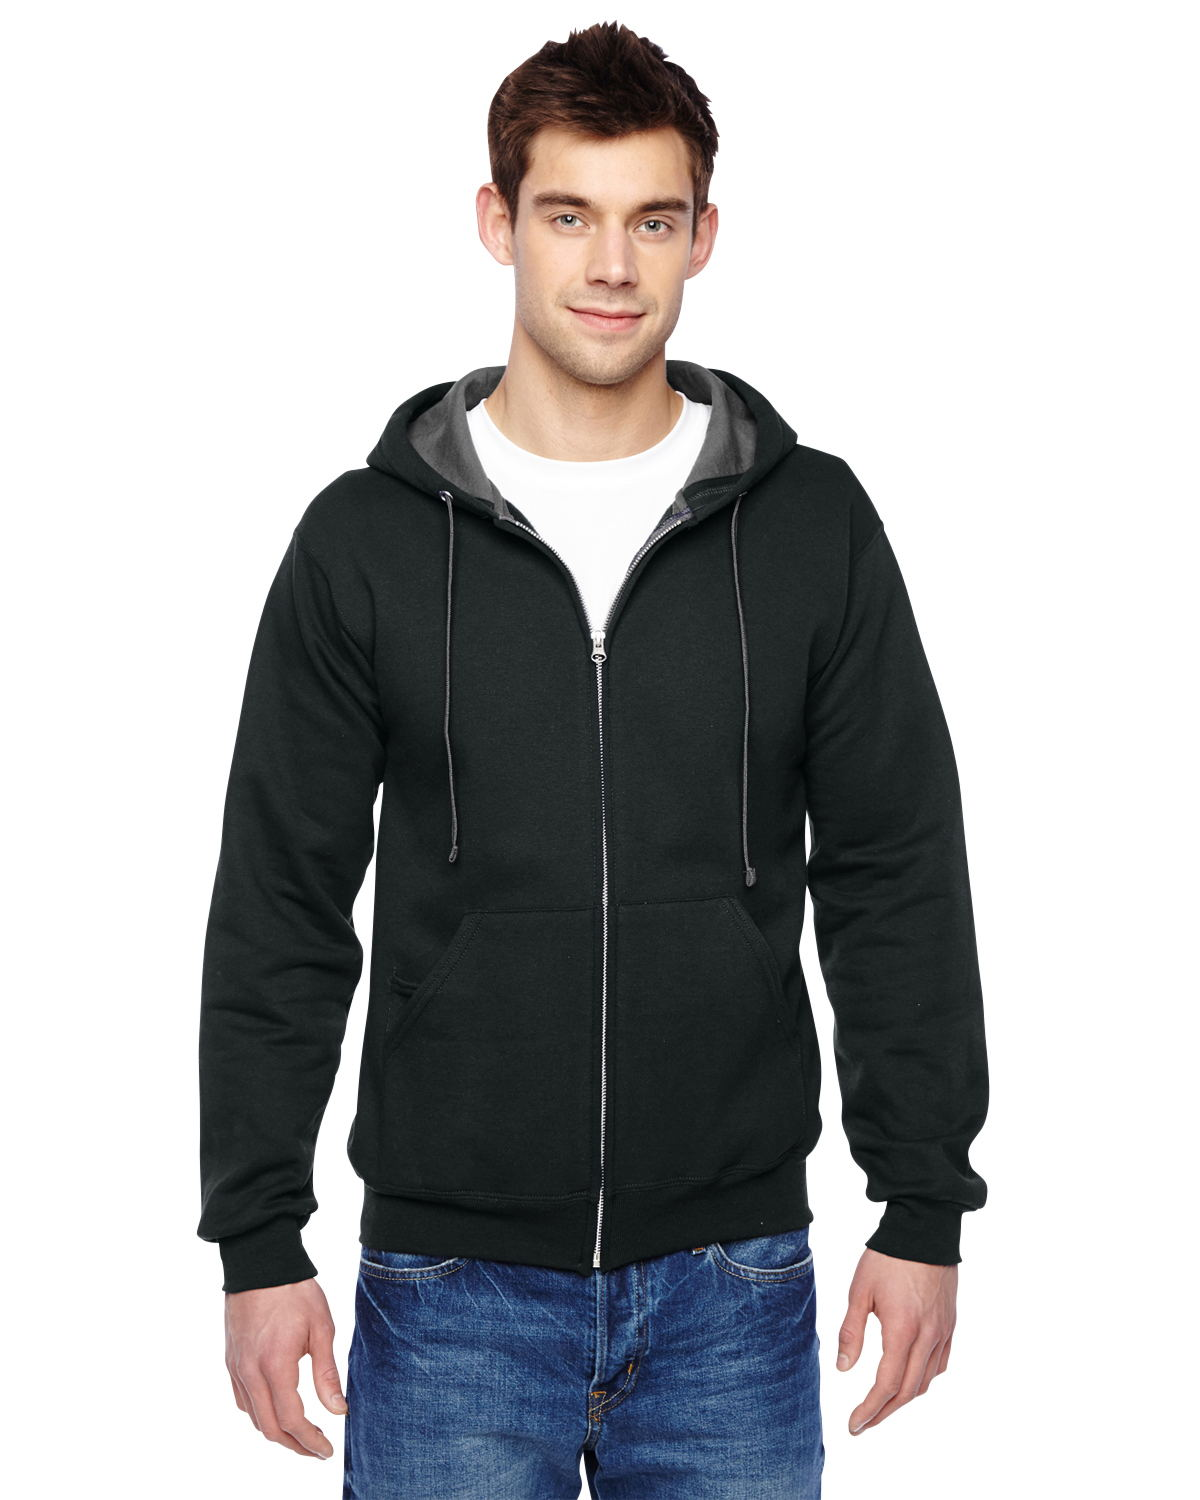 Fruit of the Loom SF73R - 7.2 oz. Sofspun Full-Zip Hooded Sweatshirt